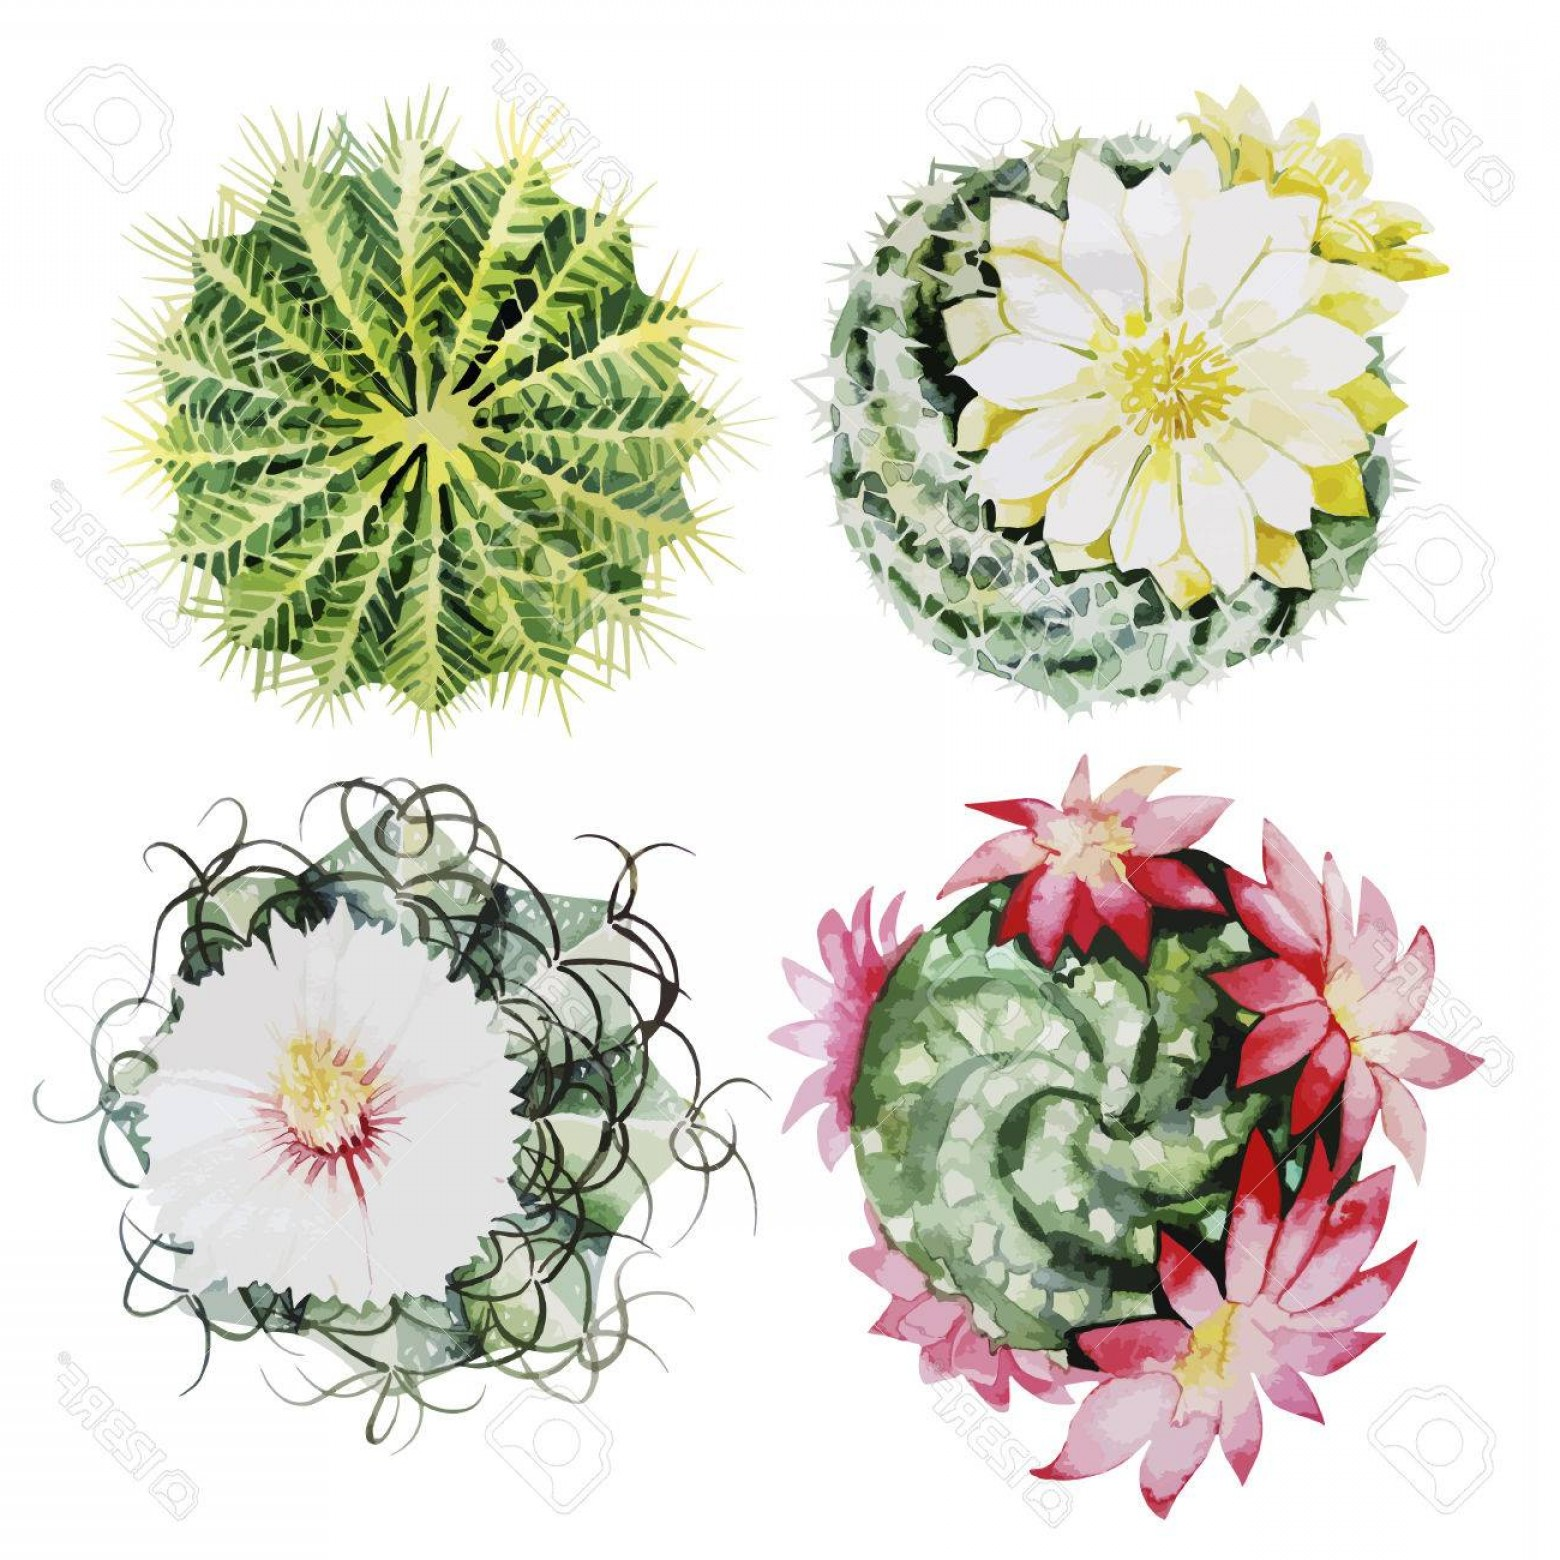 Cactus And Flower Vector: Photostock Vector Cute Watercolor Cactus Set Vector Floral Design Elements Isolated On White Background